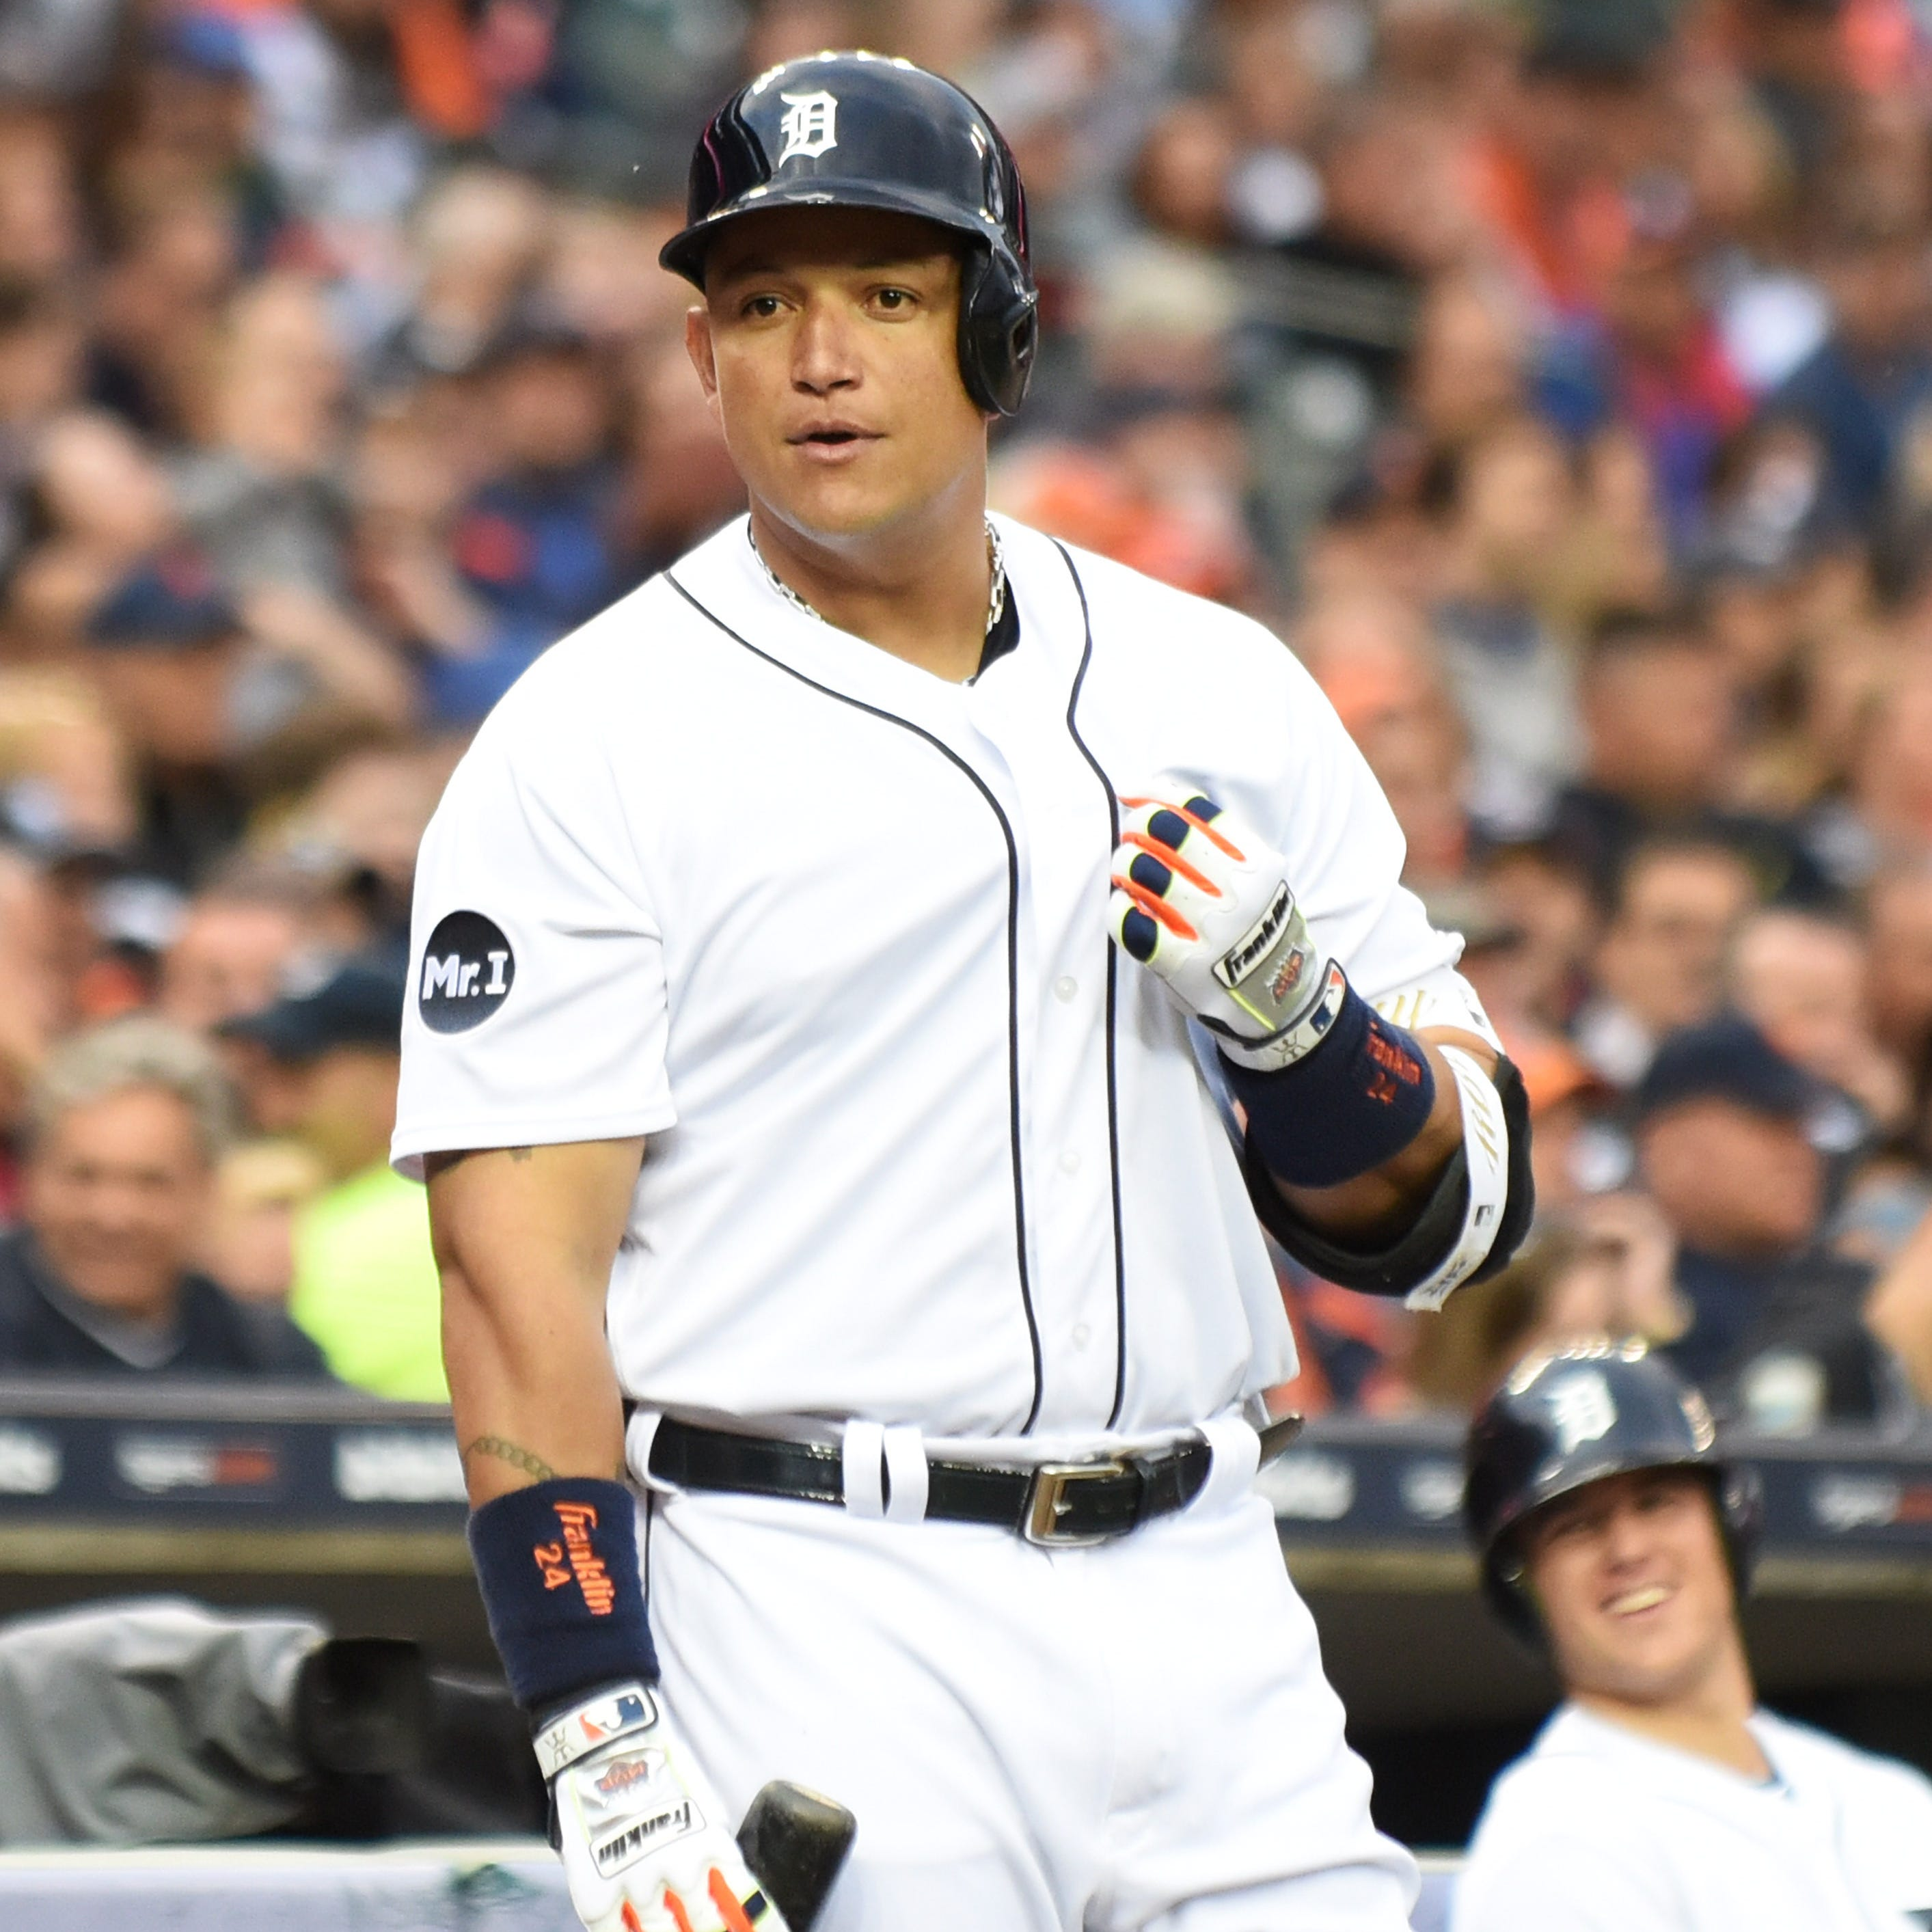 Court orders Tigers' Miguel Cabrera to pay $20,000 in monthly support